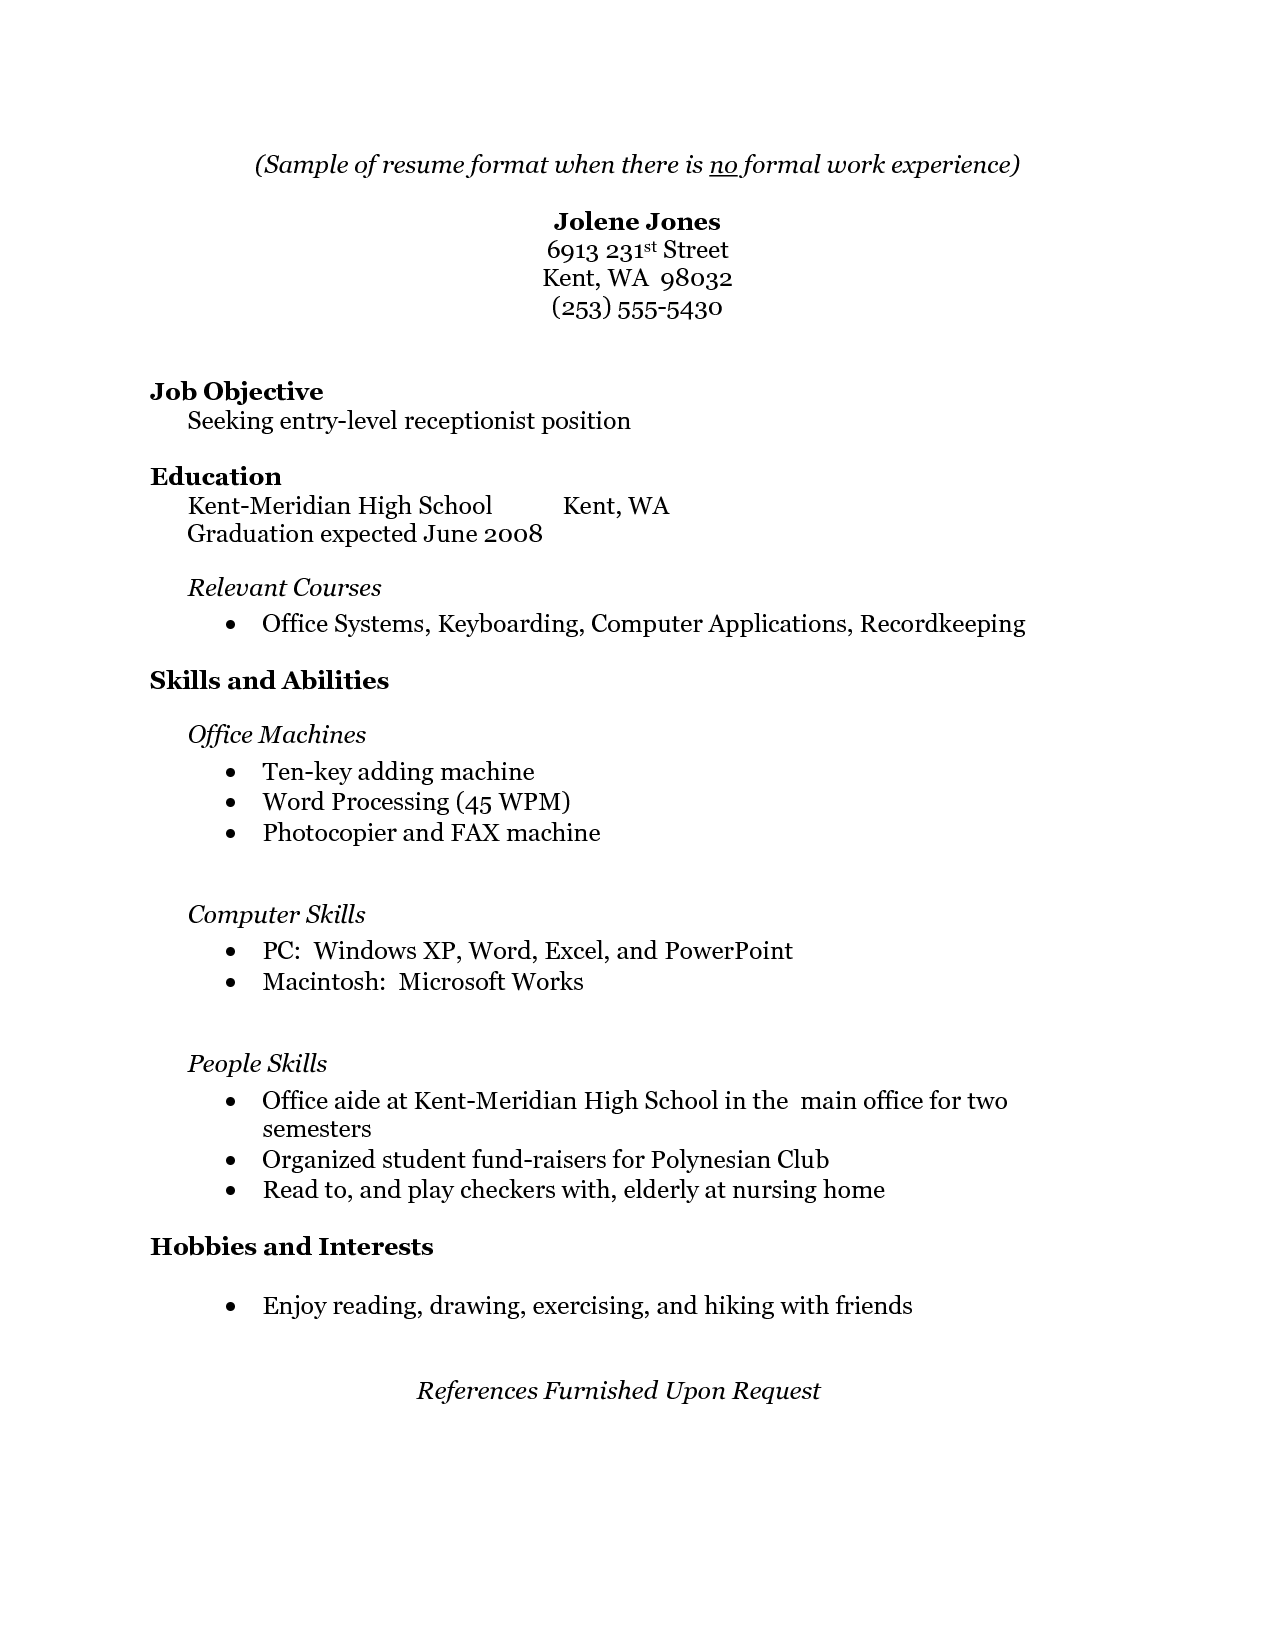 resume template for someone with no work experience - job resume no experience examples http www